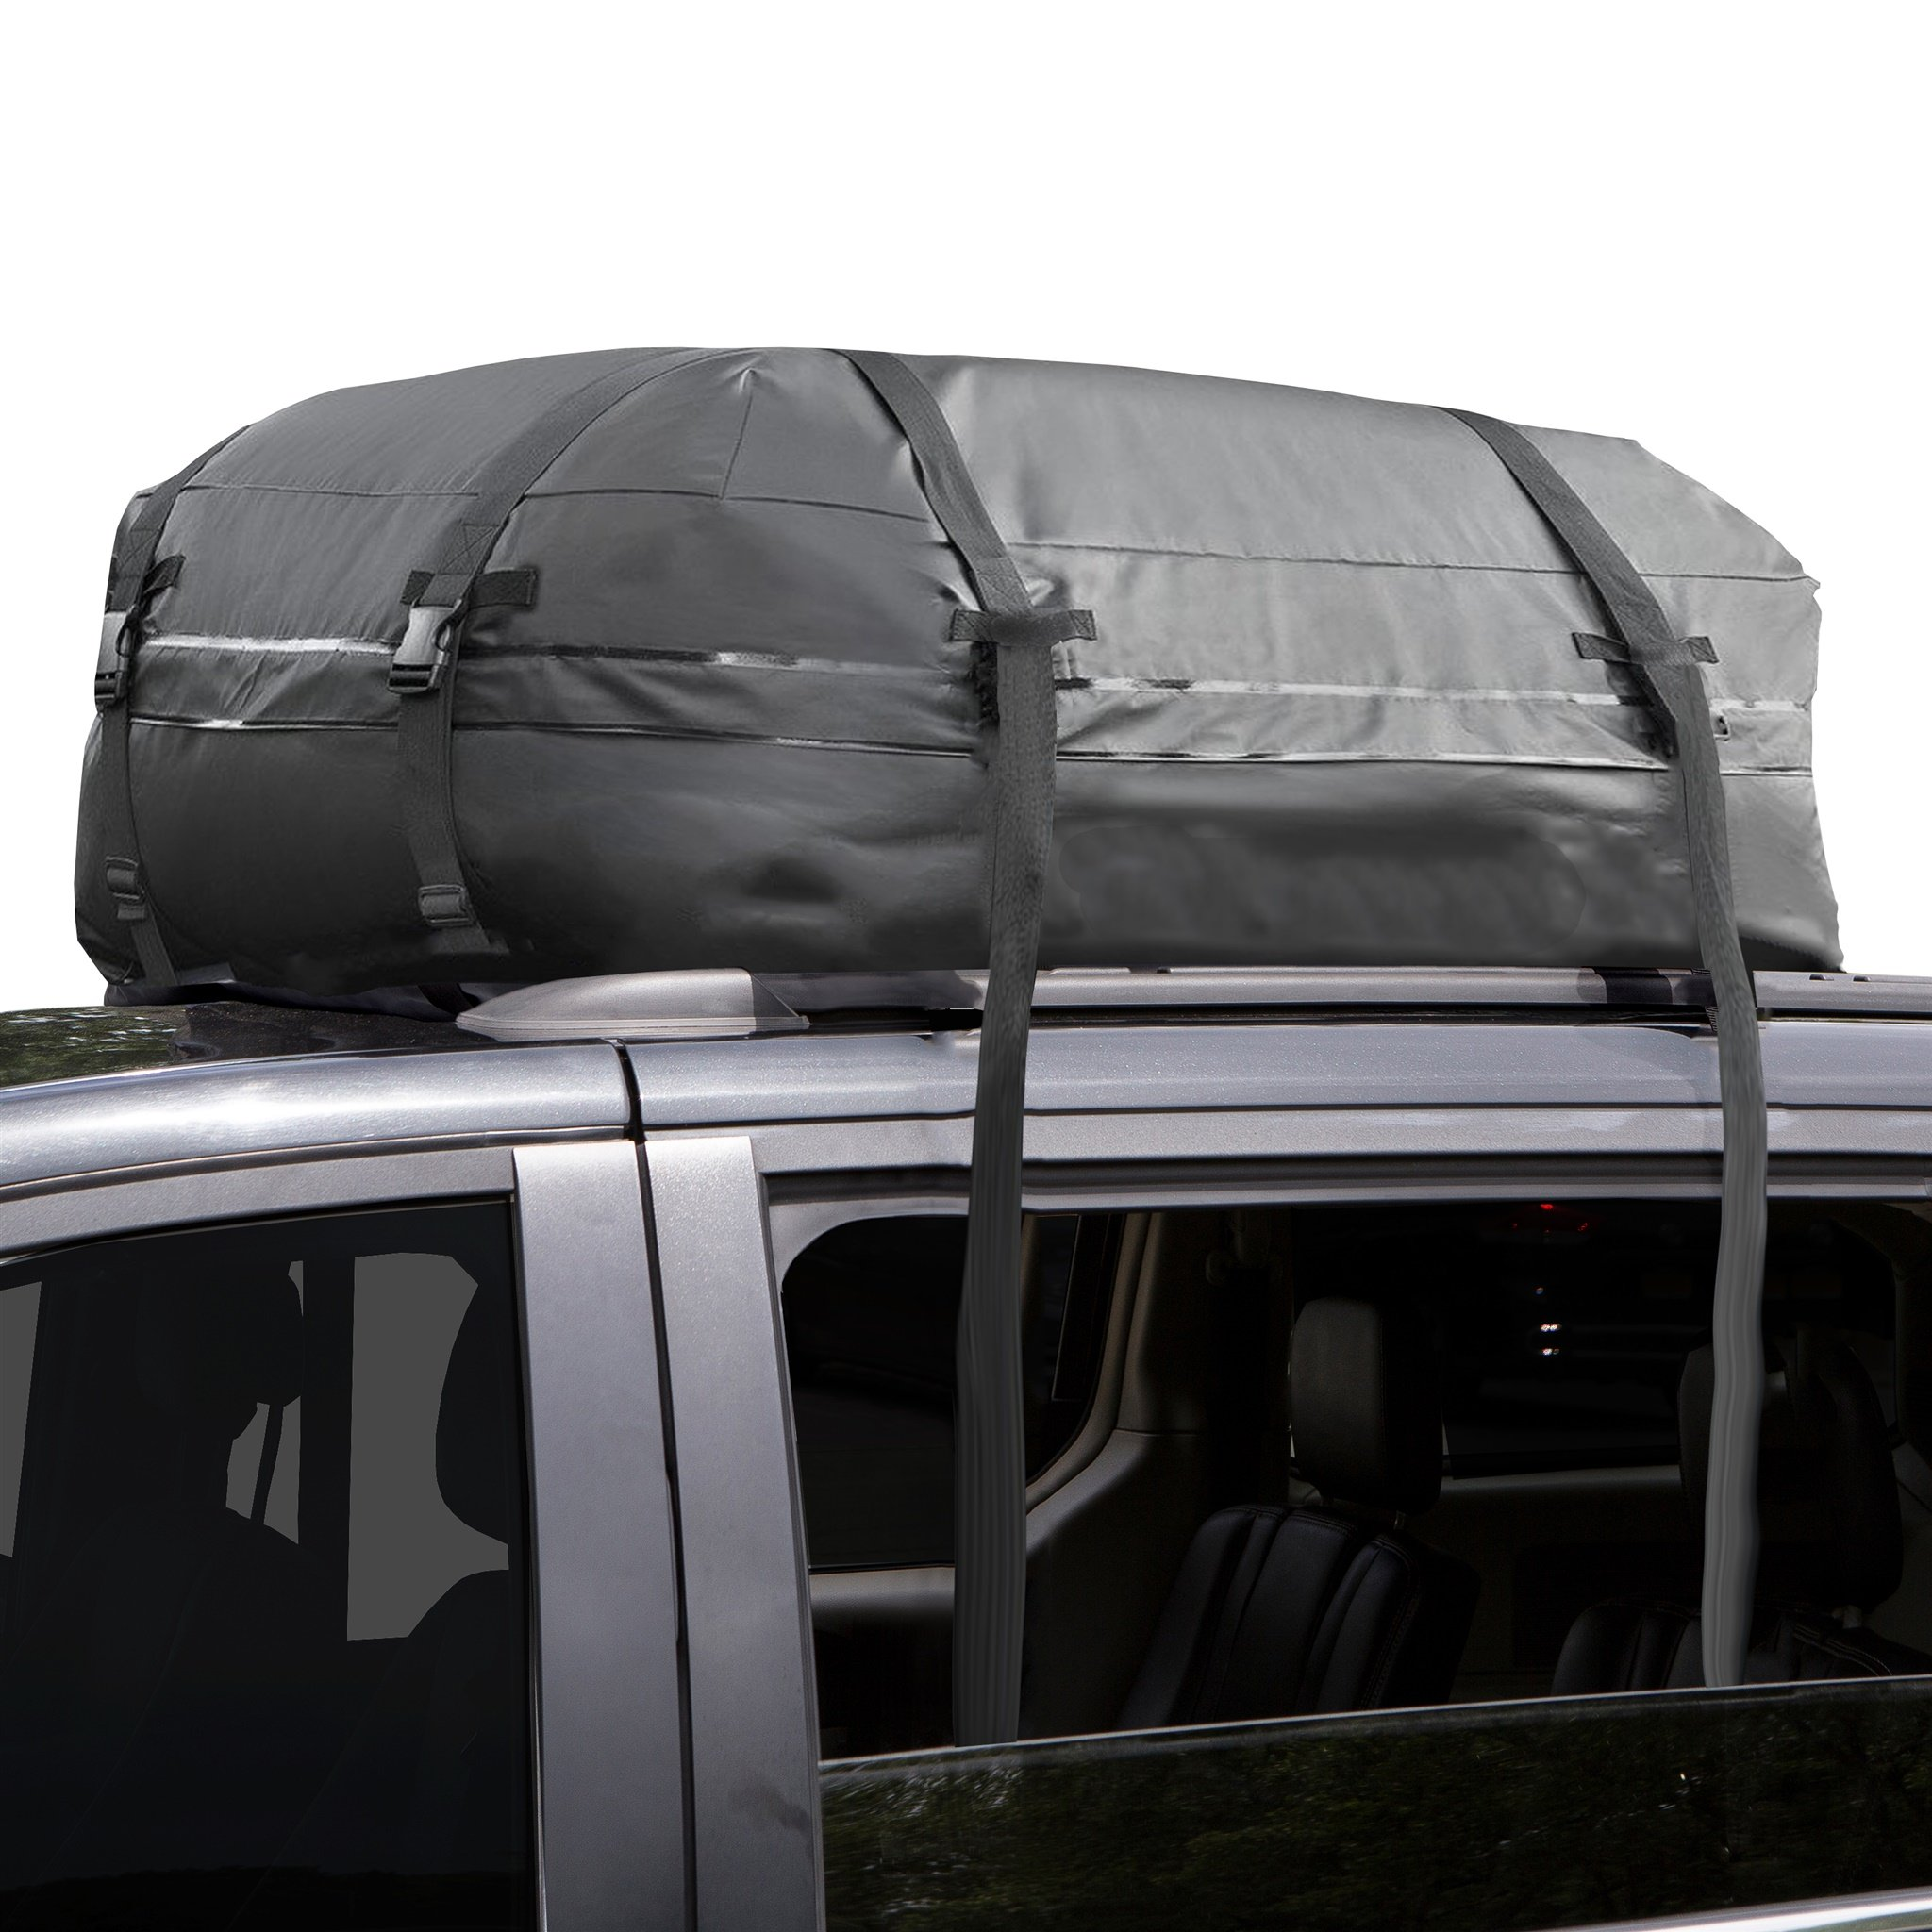 Cargo Roof Bag - 100% Waterproof - NO RACKS NEEDED - Easy to Install - Soft Rooftop Luggage Carriers with Wide Straps -Folds Easily - Best for Traveling, Cars, Vans, SUVs (Black - 15 Cubic Feet) by BD Covers